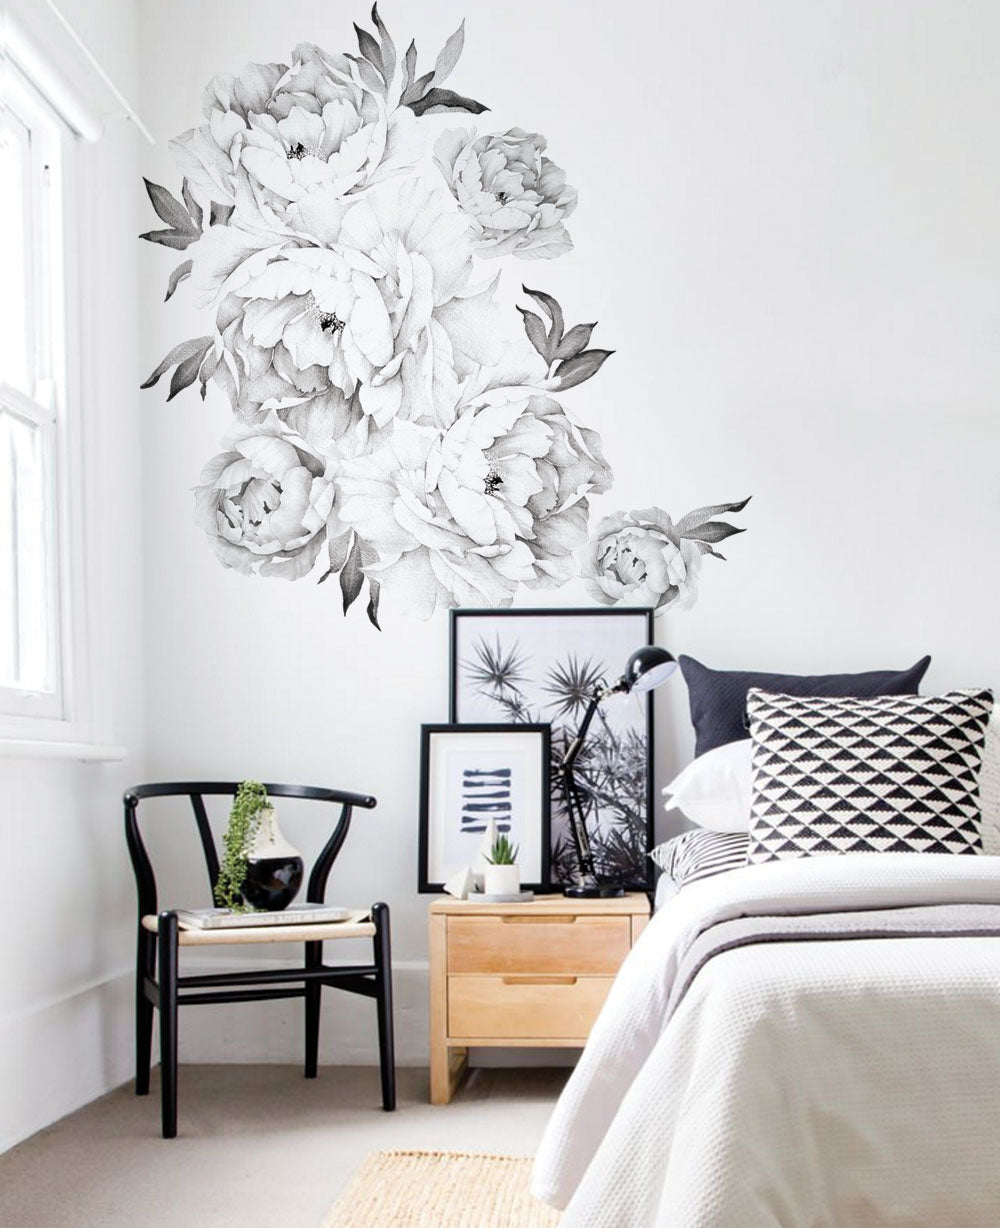 Peony Flower Wall Stickers - Simple Shapes